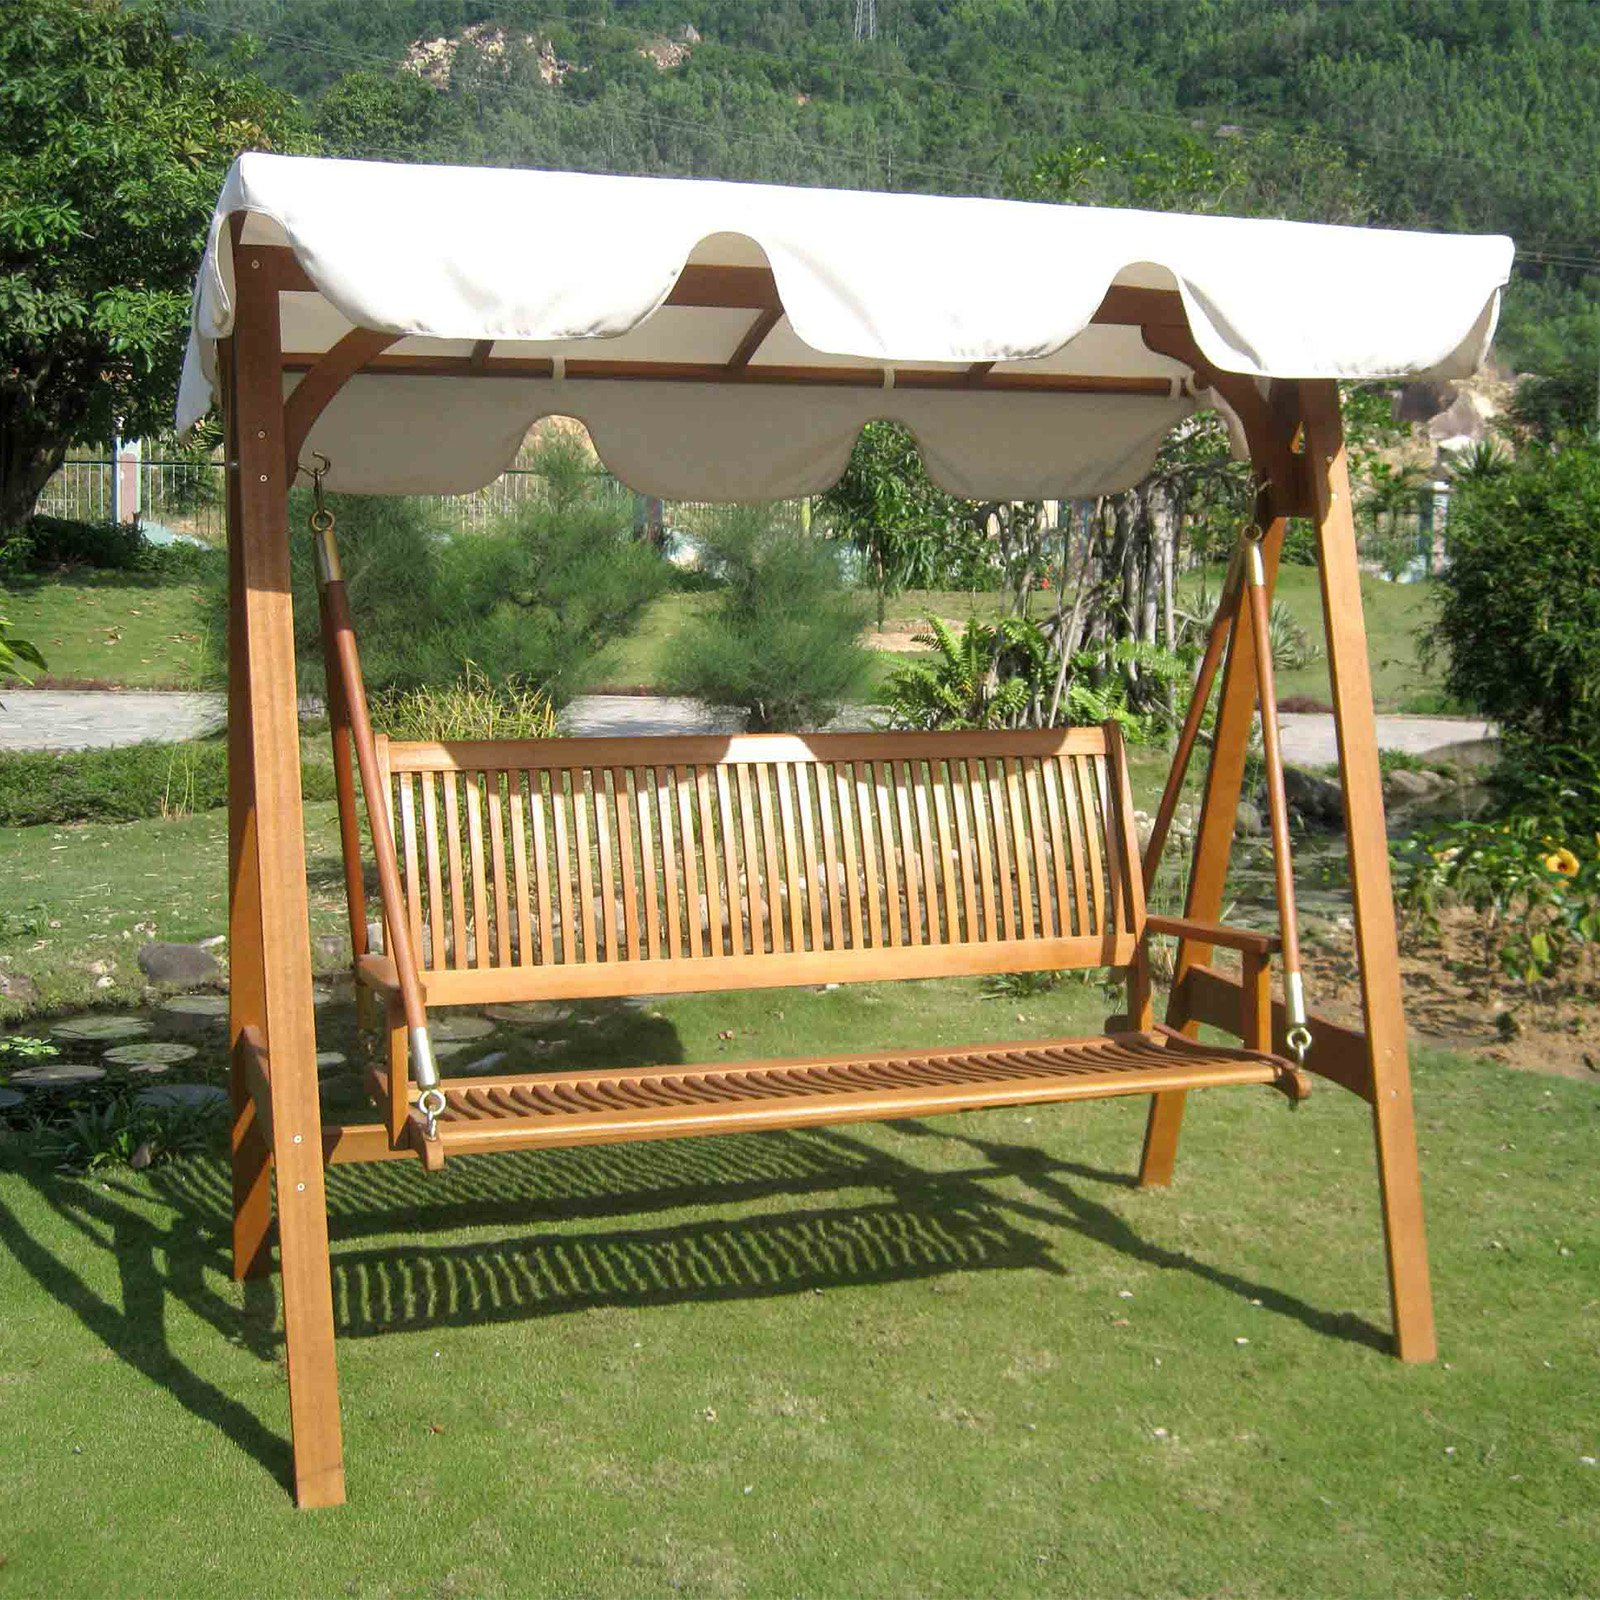 Hammock Patio Backyard Stand – Recognizealeader Within Best And Newest Wicker Glider Outdoor Porch Swings With Stand (View 11 of 30)